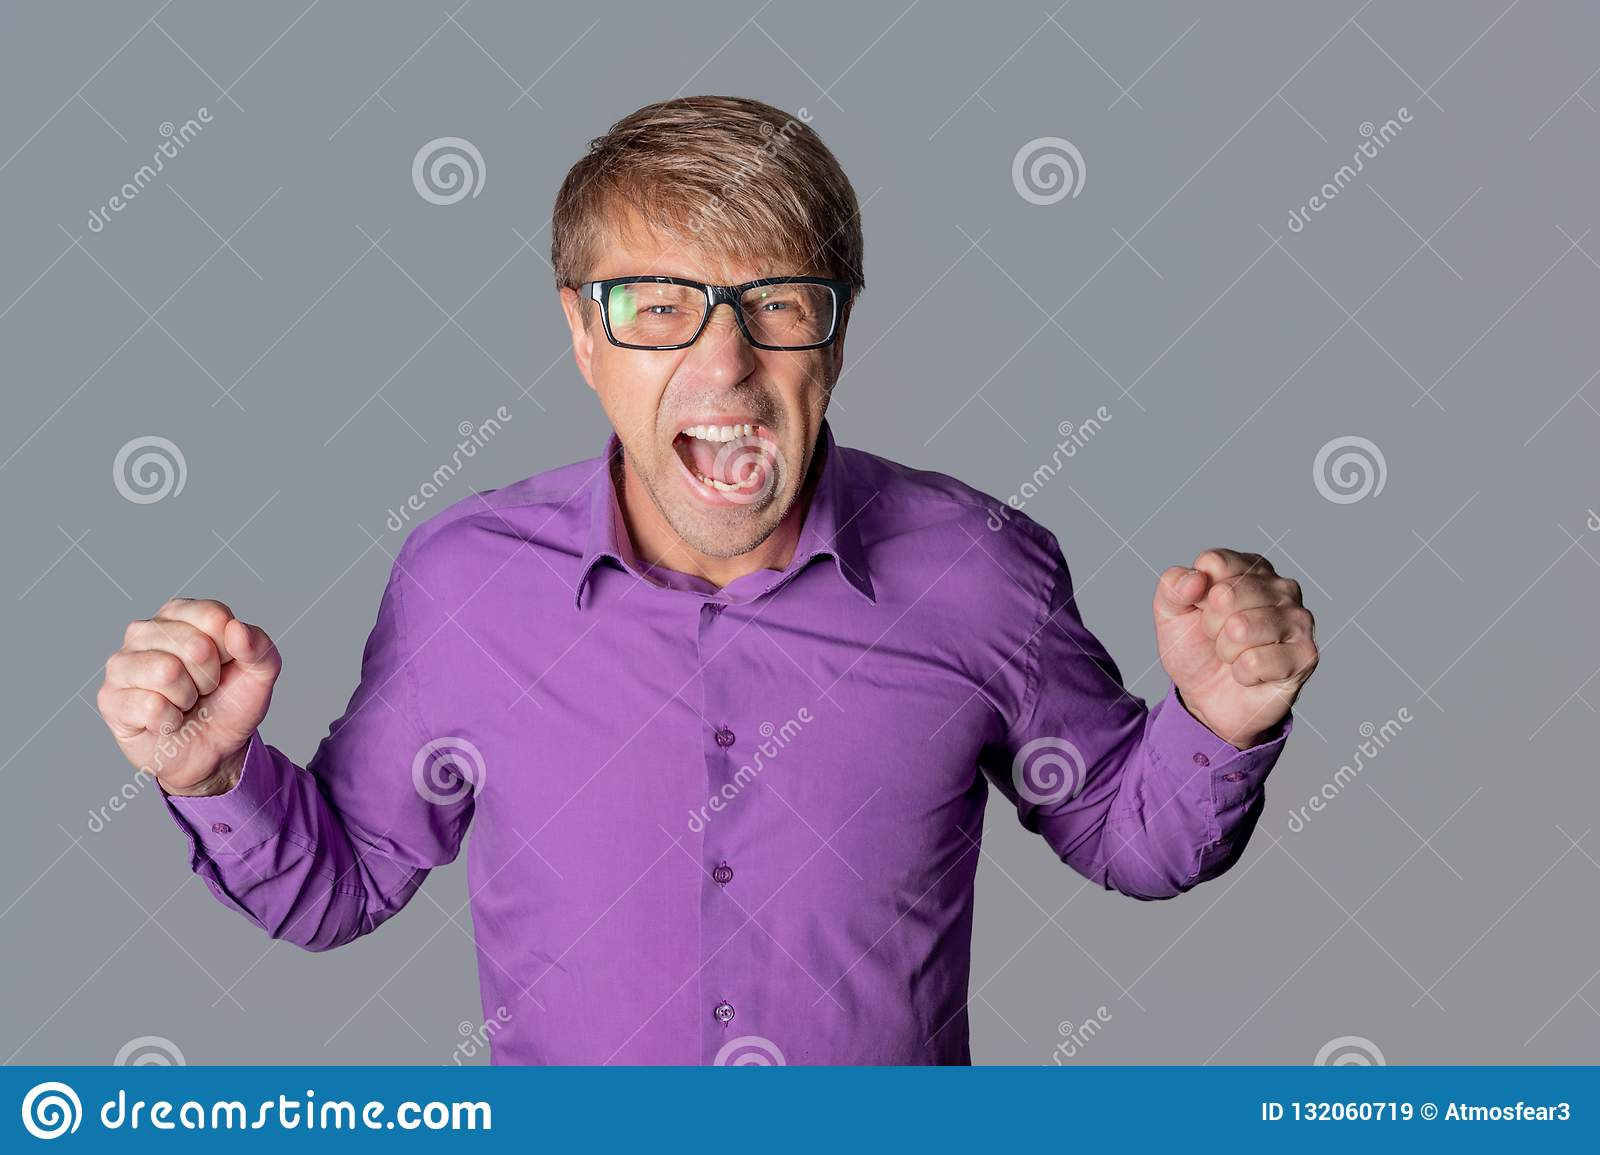 Portrait of a angry man with glasses staring at camera, shows finger and shouting over gray background